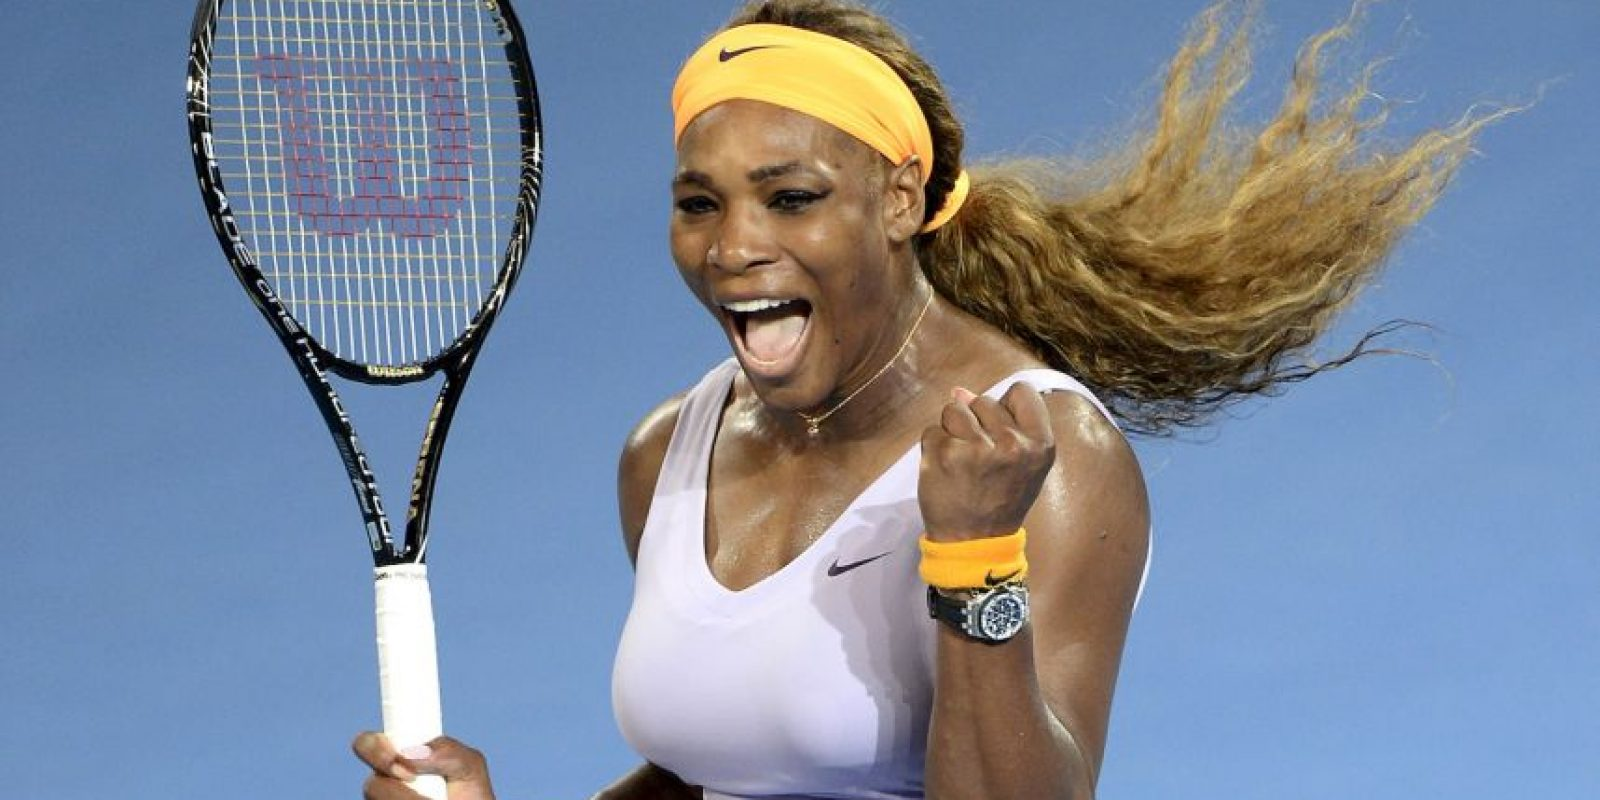 20. Serena Williams / Tenis Foto: Getty Images